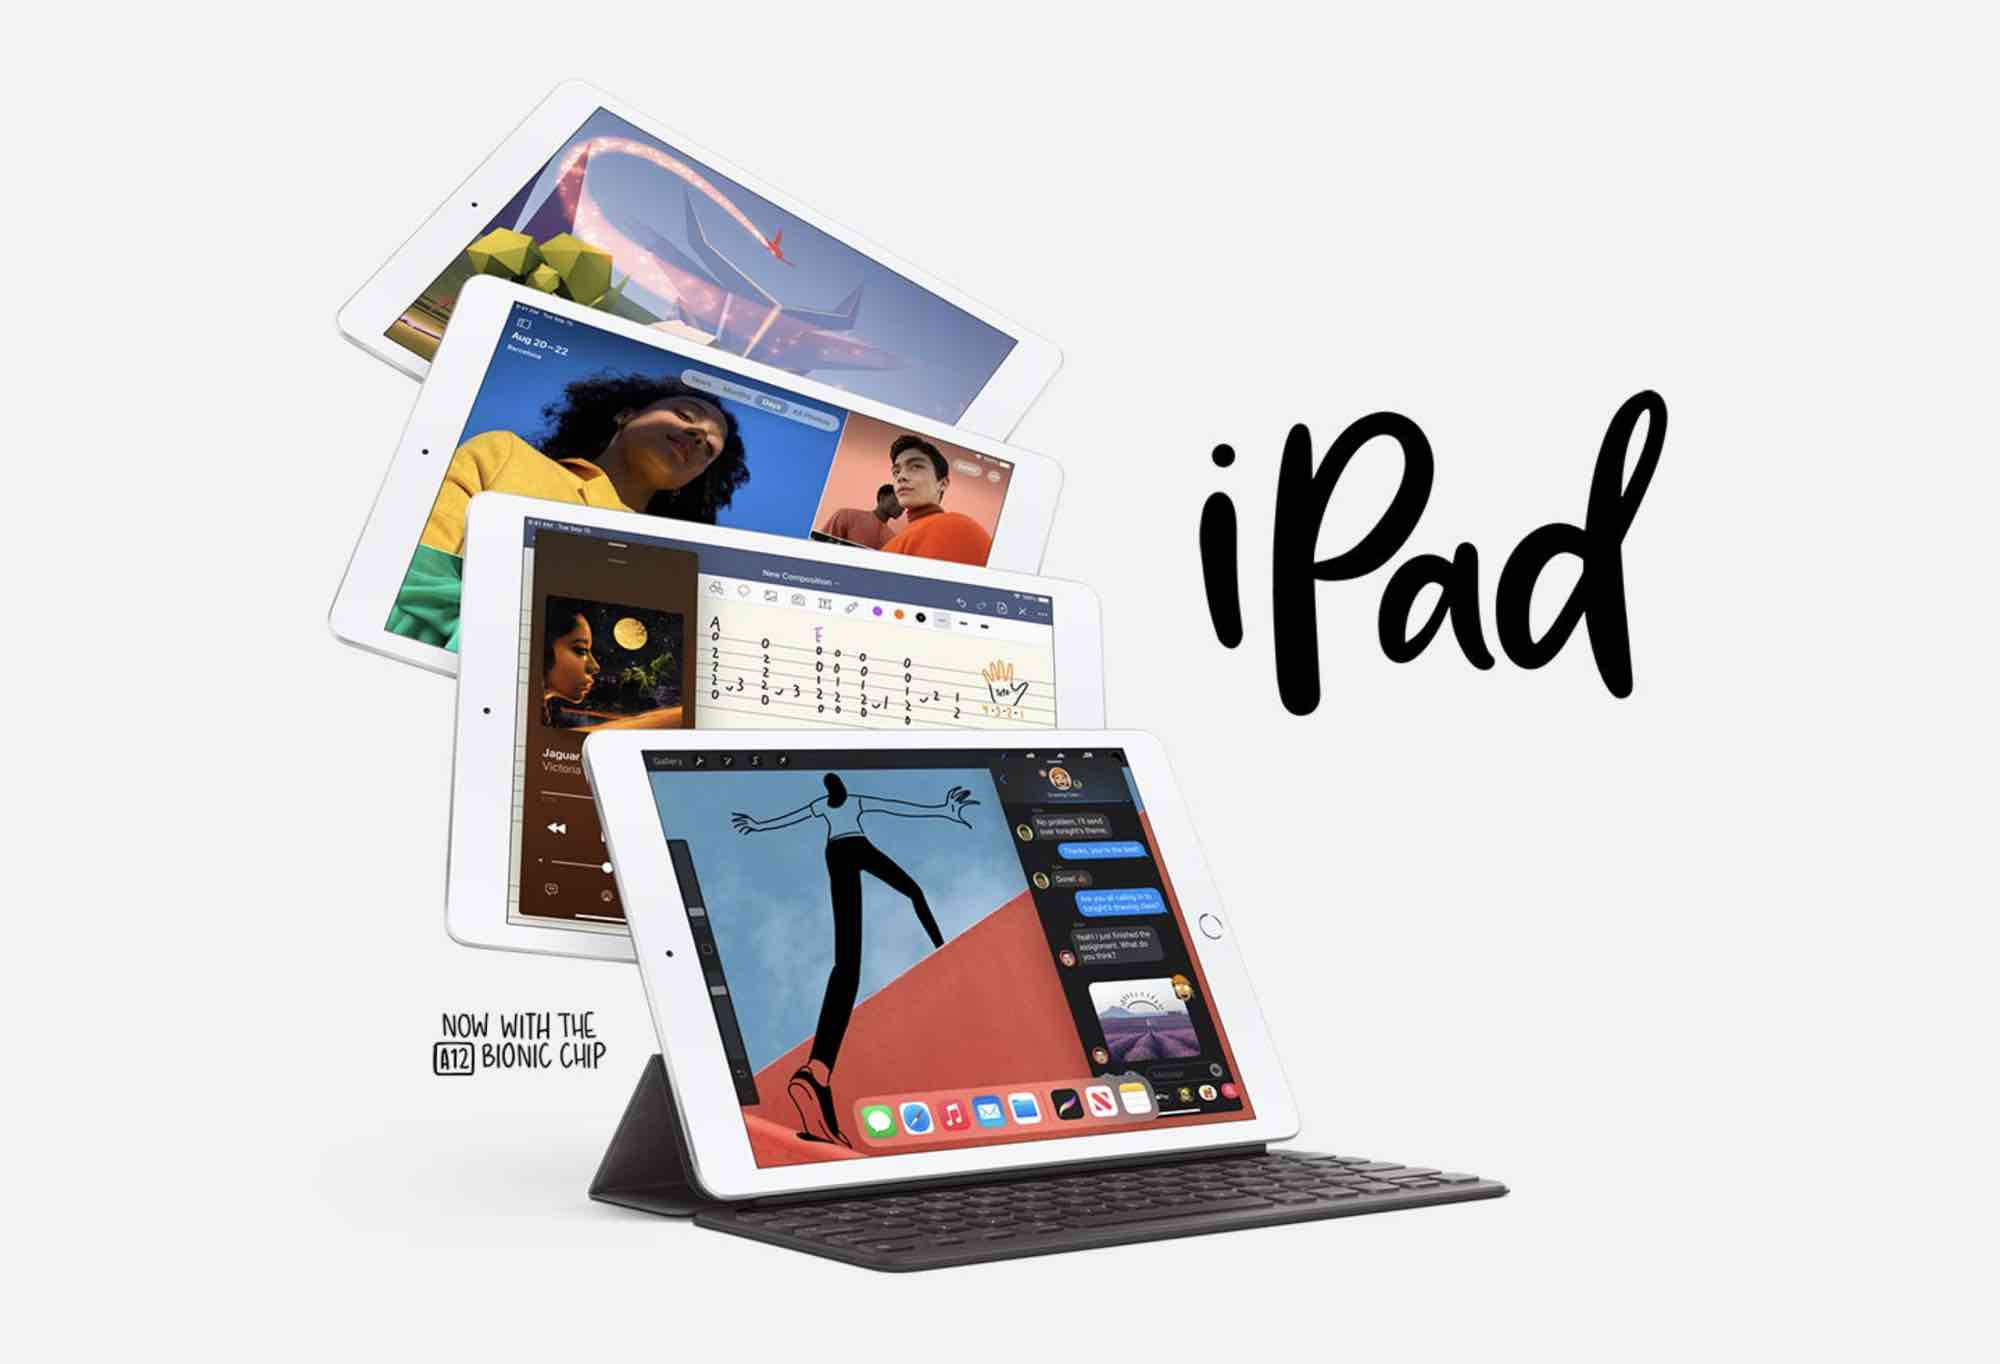 iPad 8th gen deals